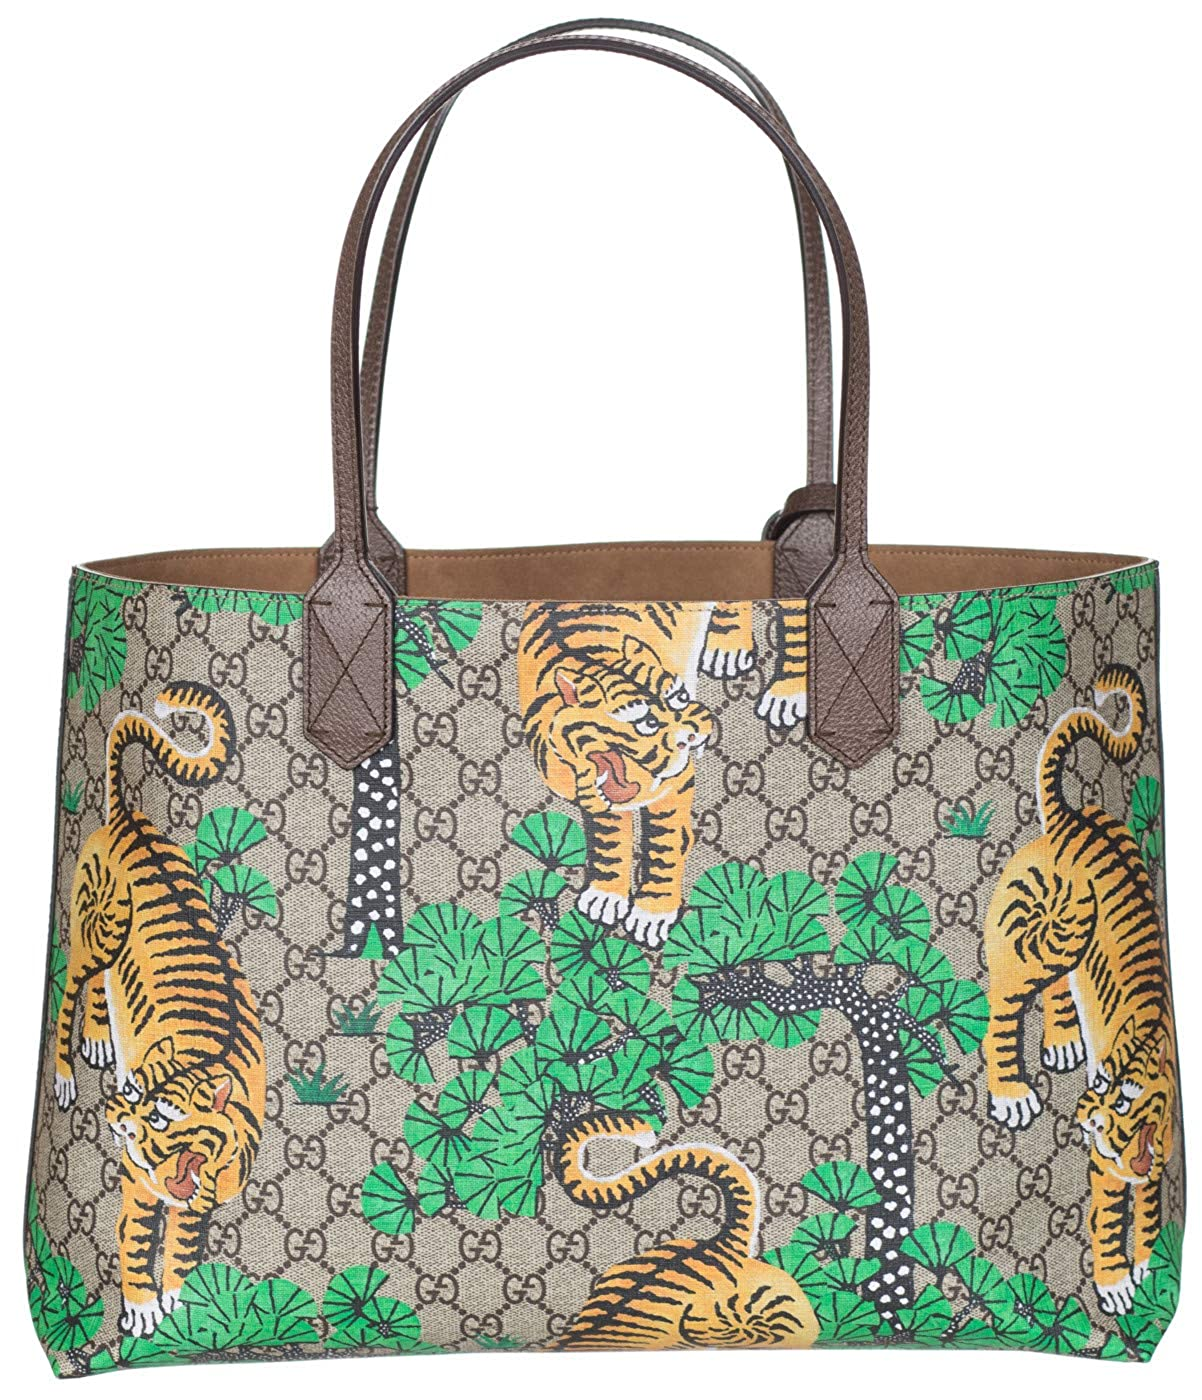 f949288978e Gucci GG Supreme Leather Bengal Tiger Tote Shoulder Bag  Amazon.co.uk   Shoes   Bags